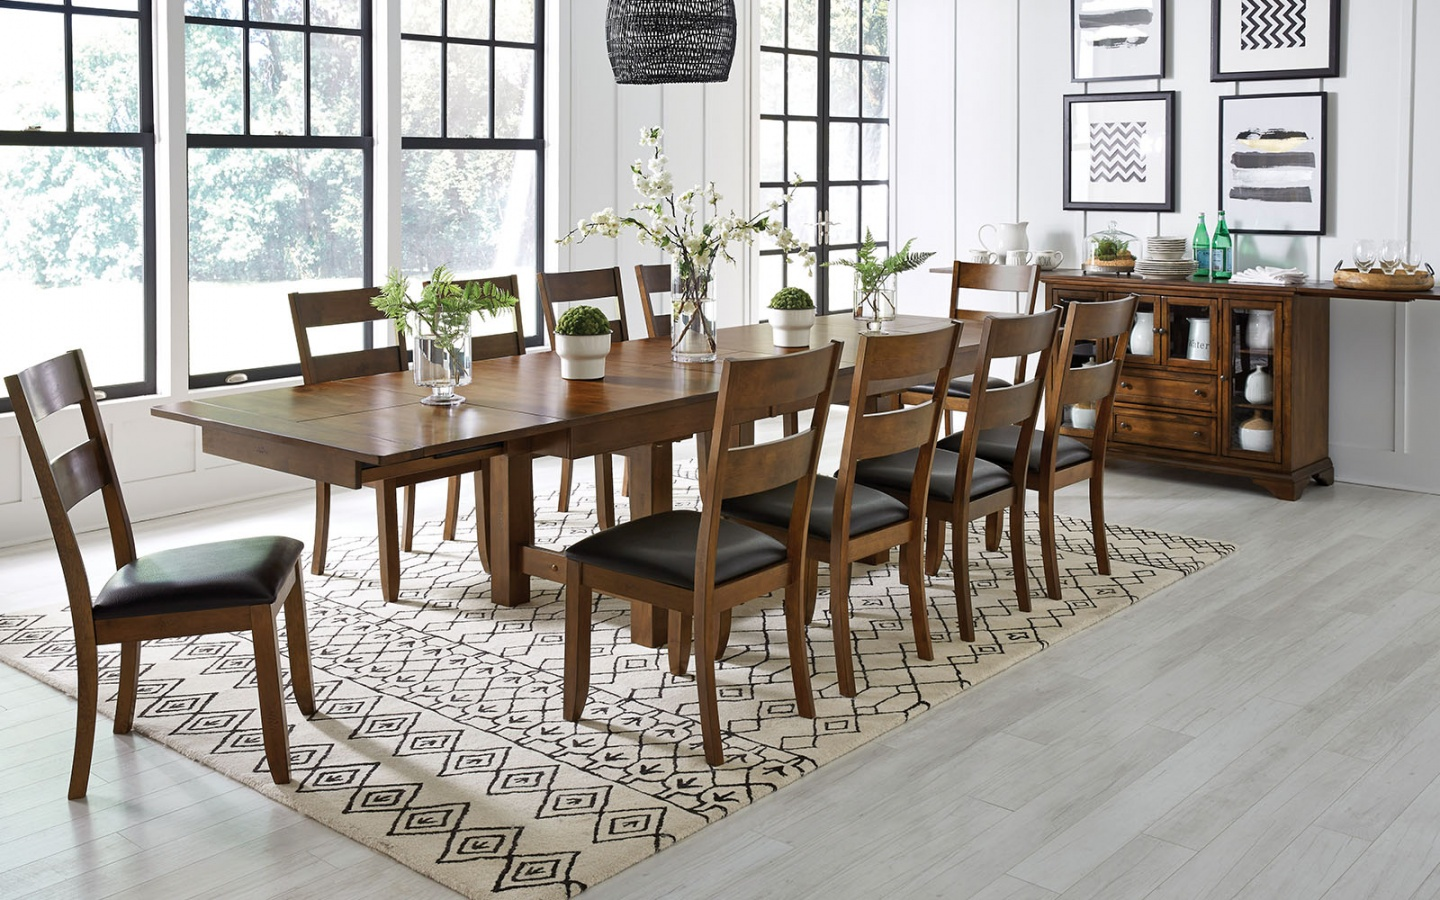 Mariposa RW Table & Chairs